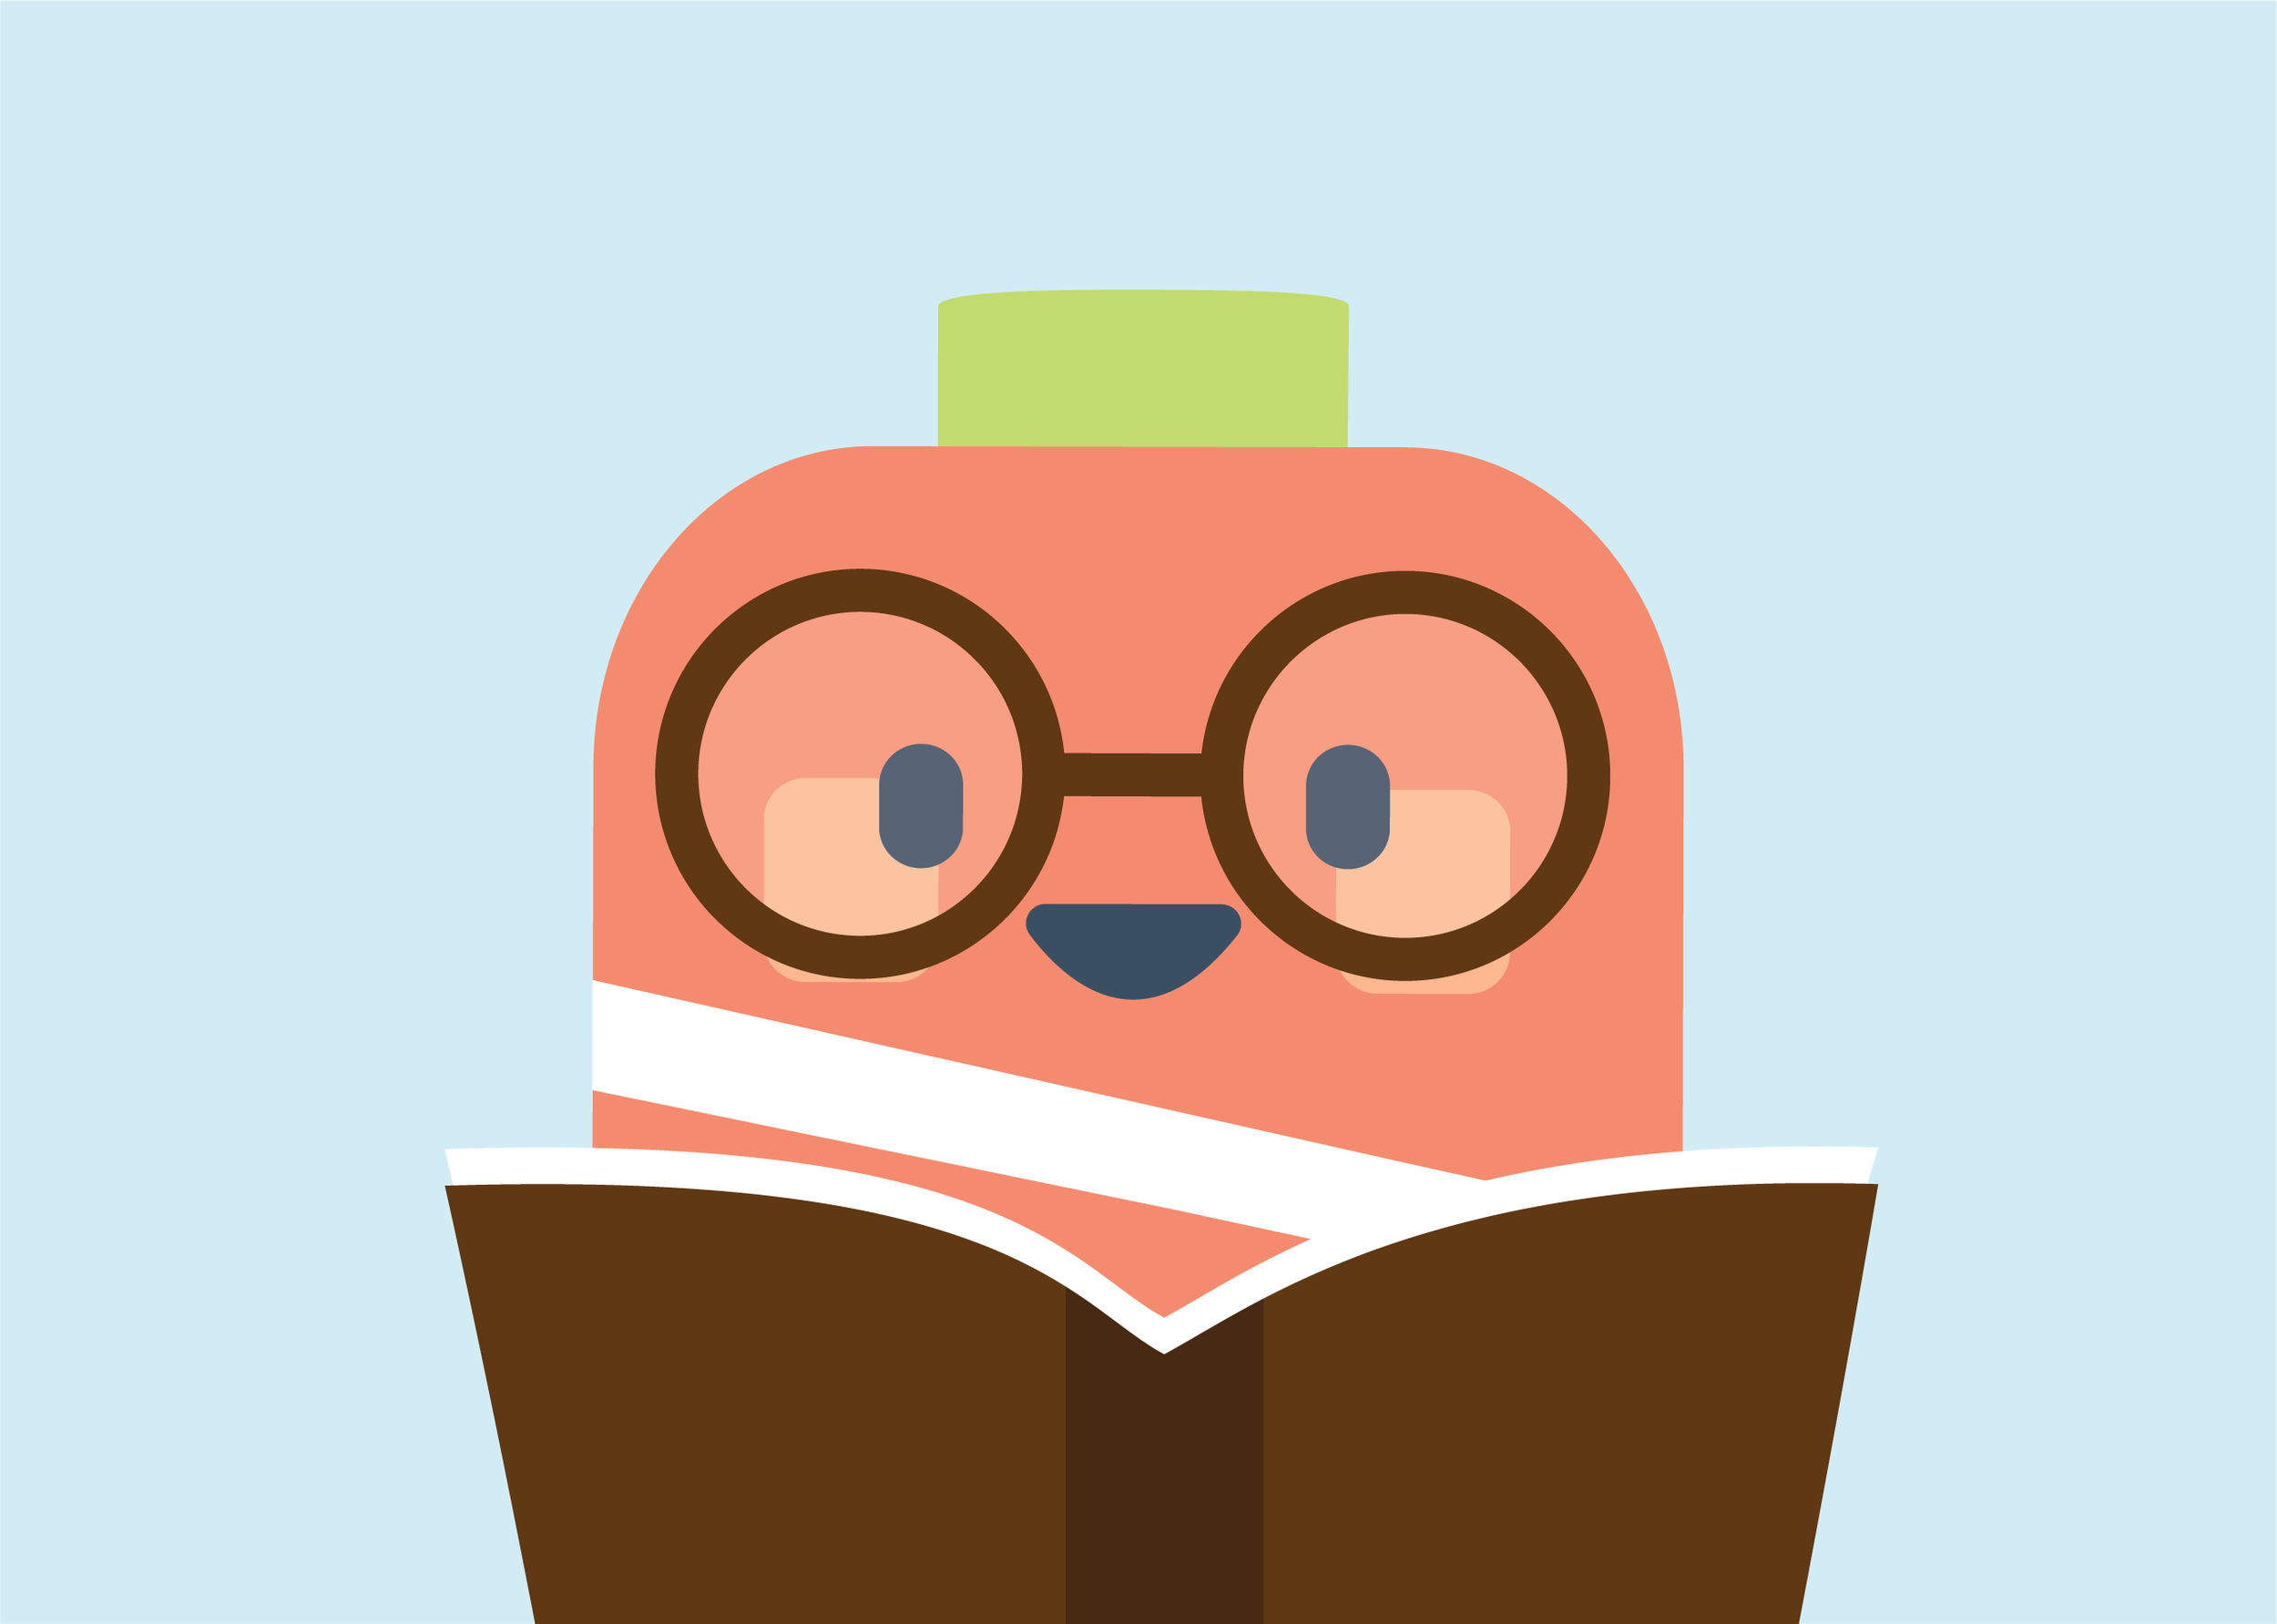 Read More. - Check out our blog to read about our featured teachers, tutorials and DIYs.